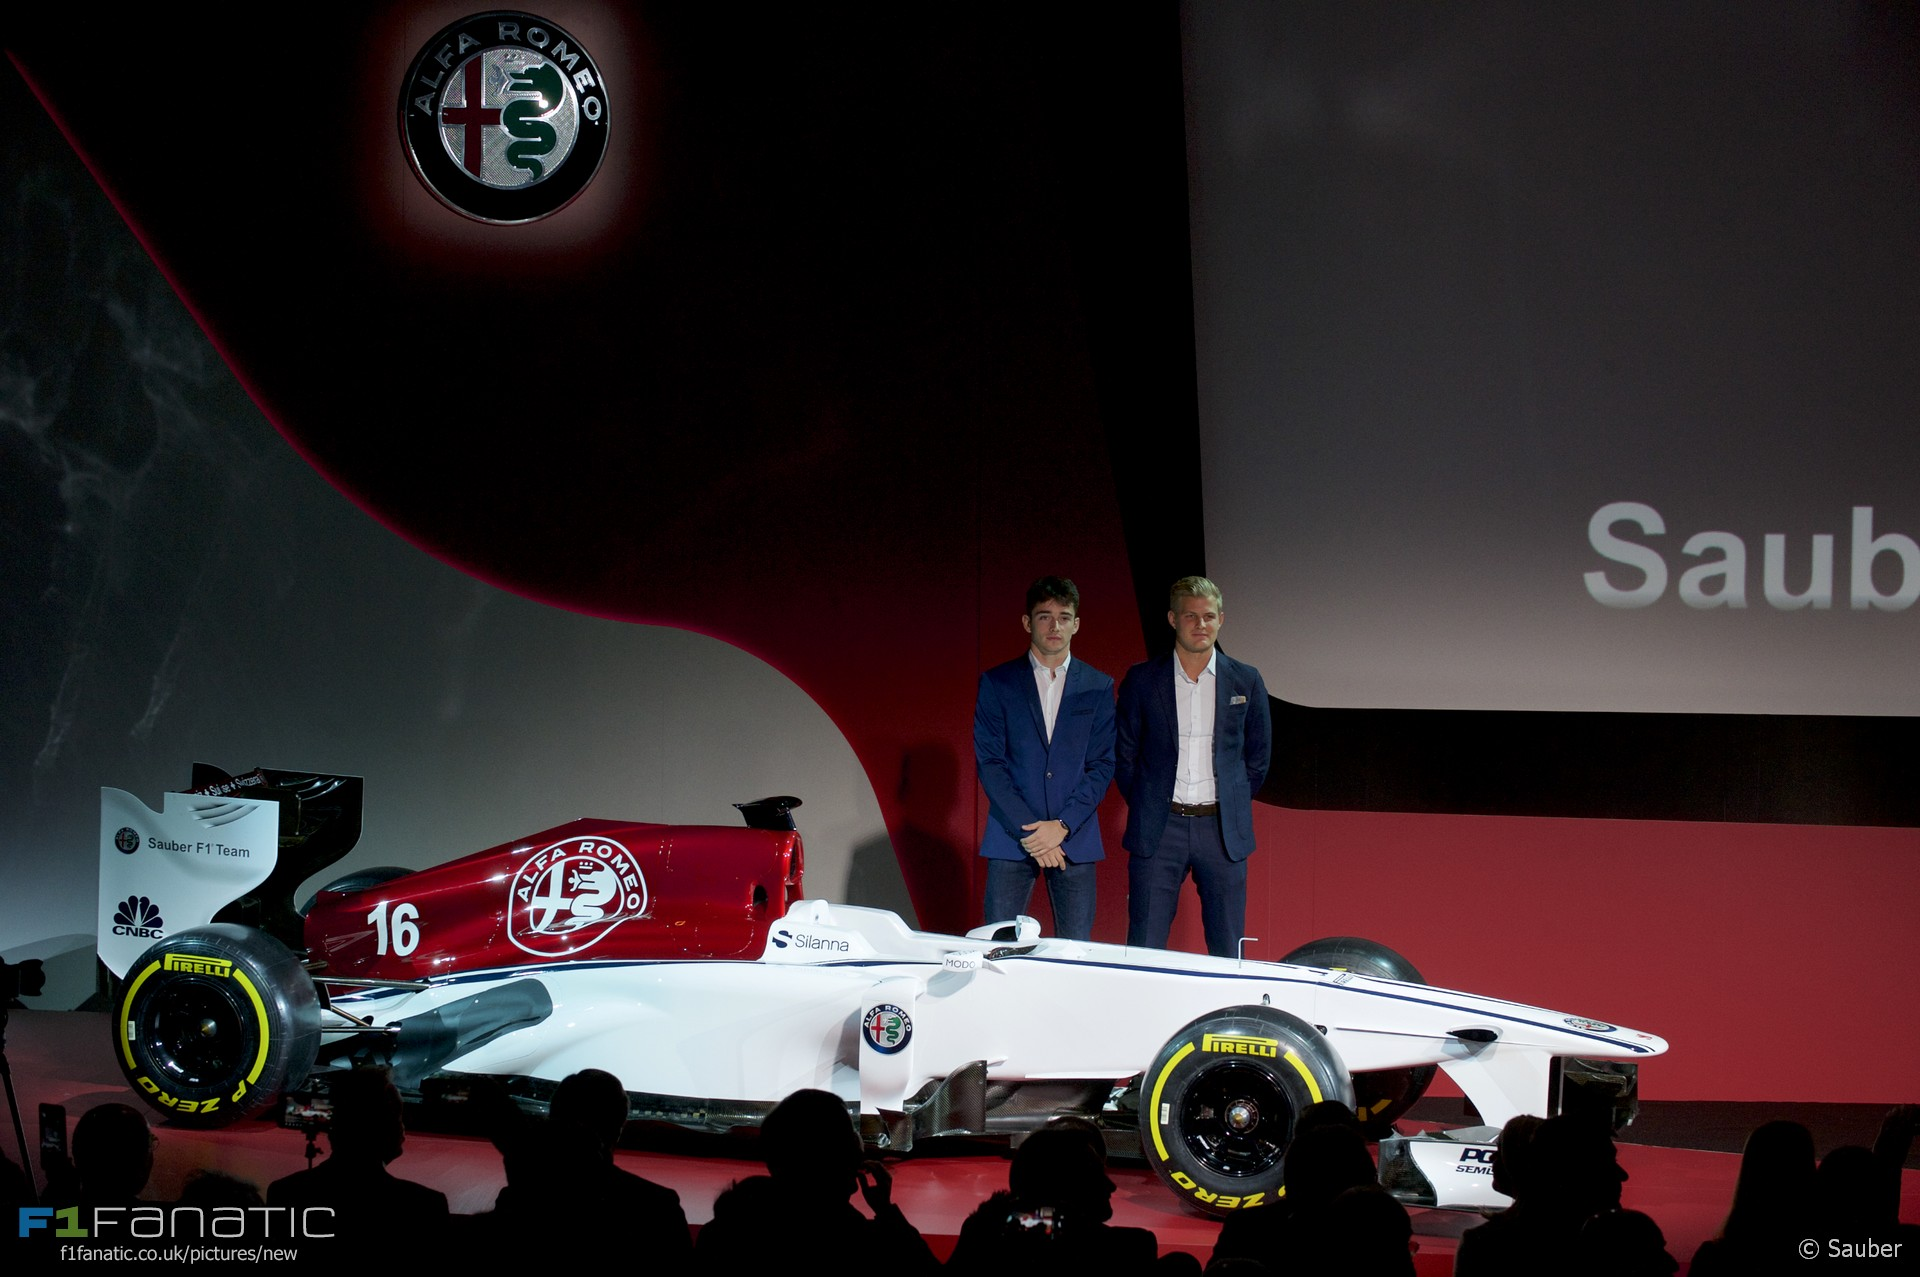 sauber alfa romeo concept livery for 2018 launch 2017 f1 fanatic. Black Bedroom Furniture Sets. Home Design Ideas